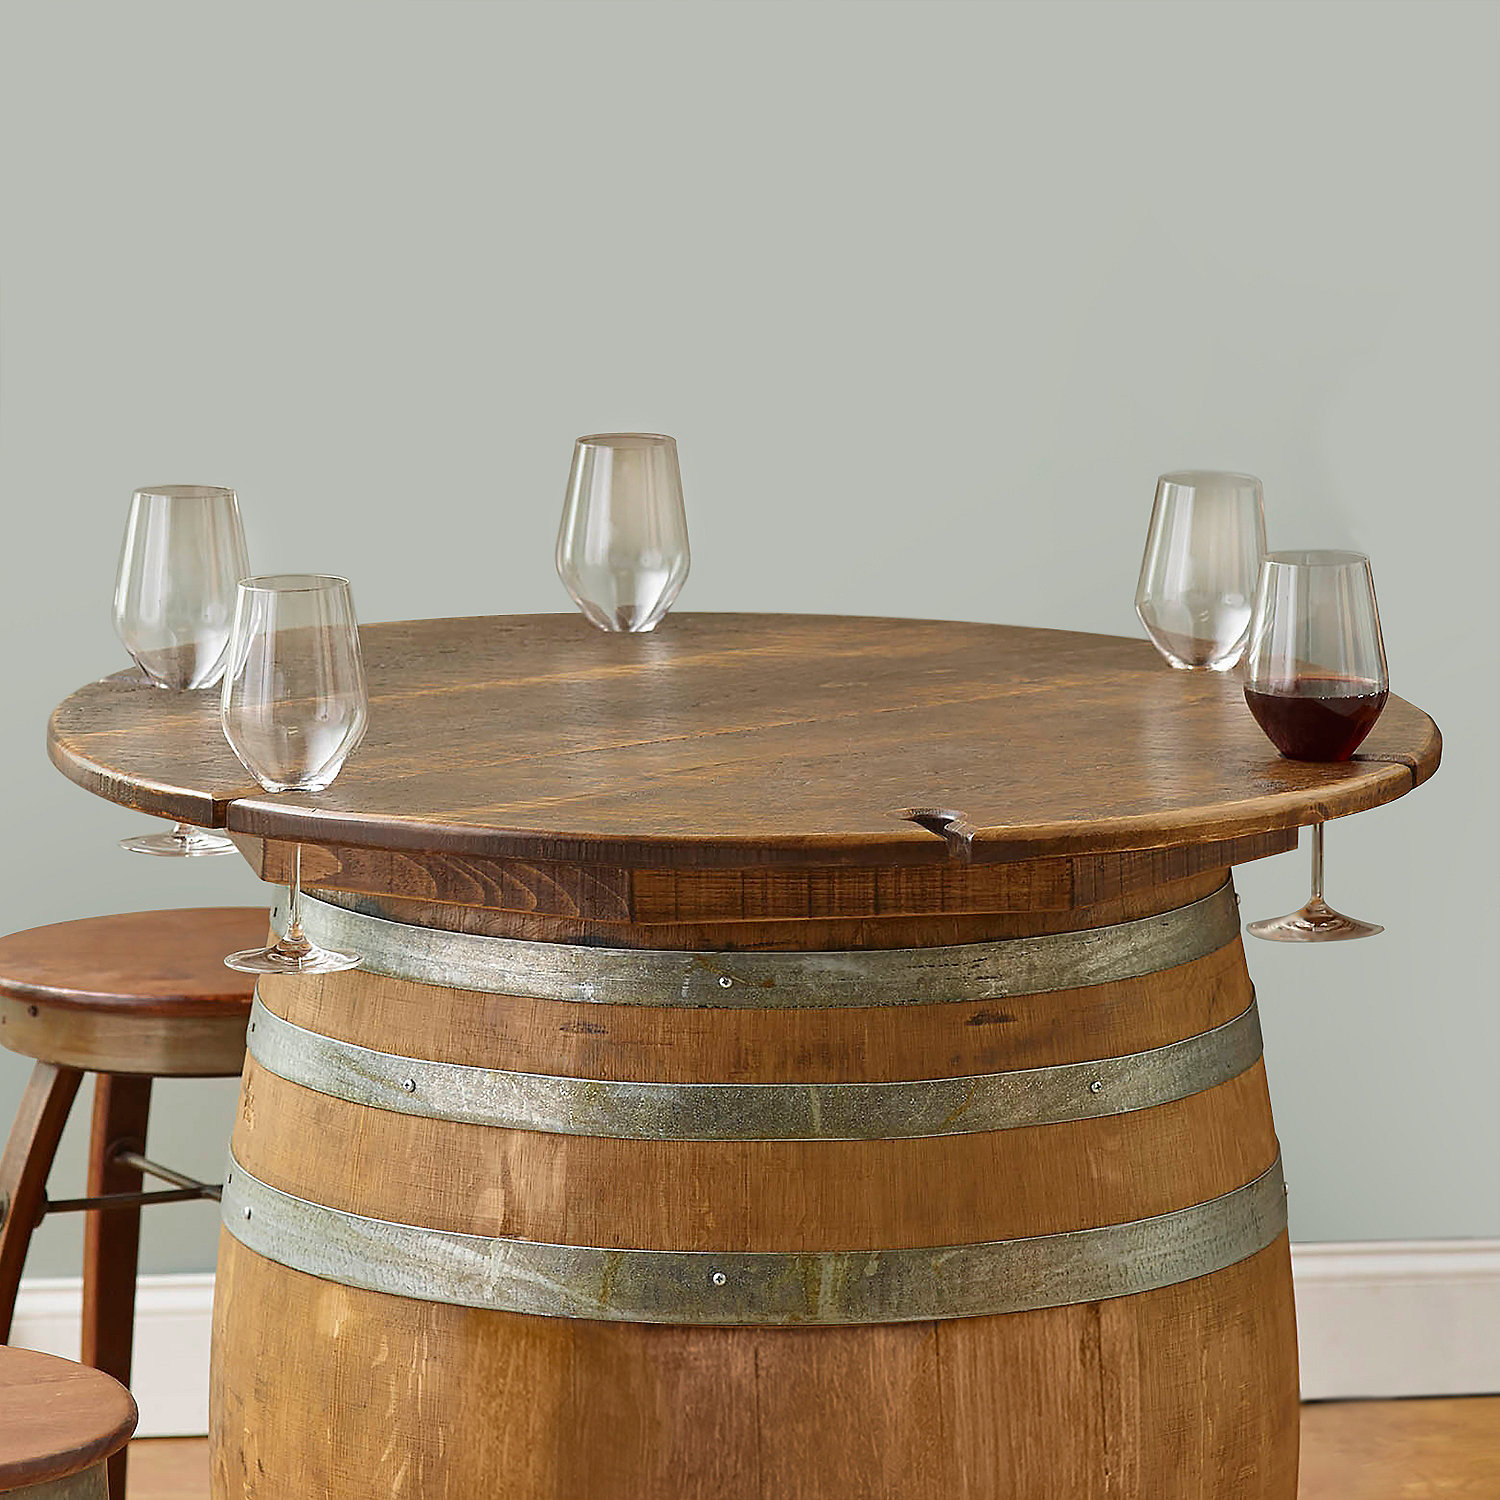 Table Top for Barrel with Glass Notches Wine Enthusiast